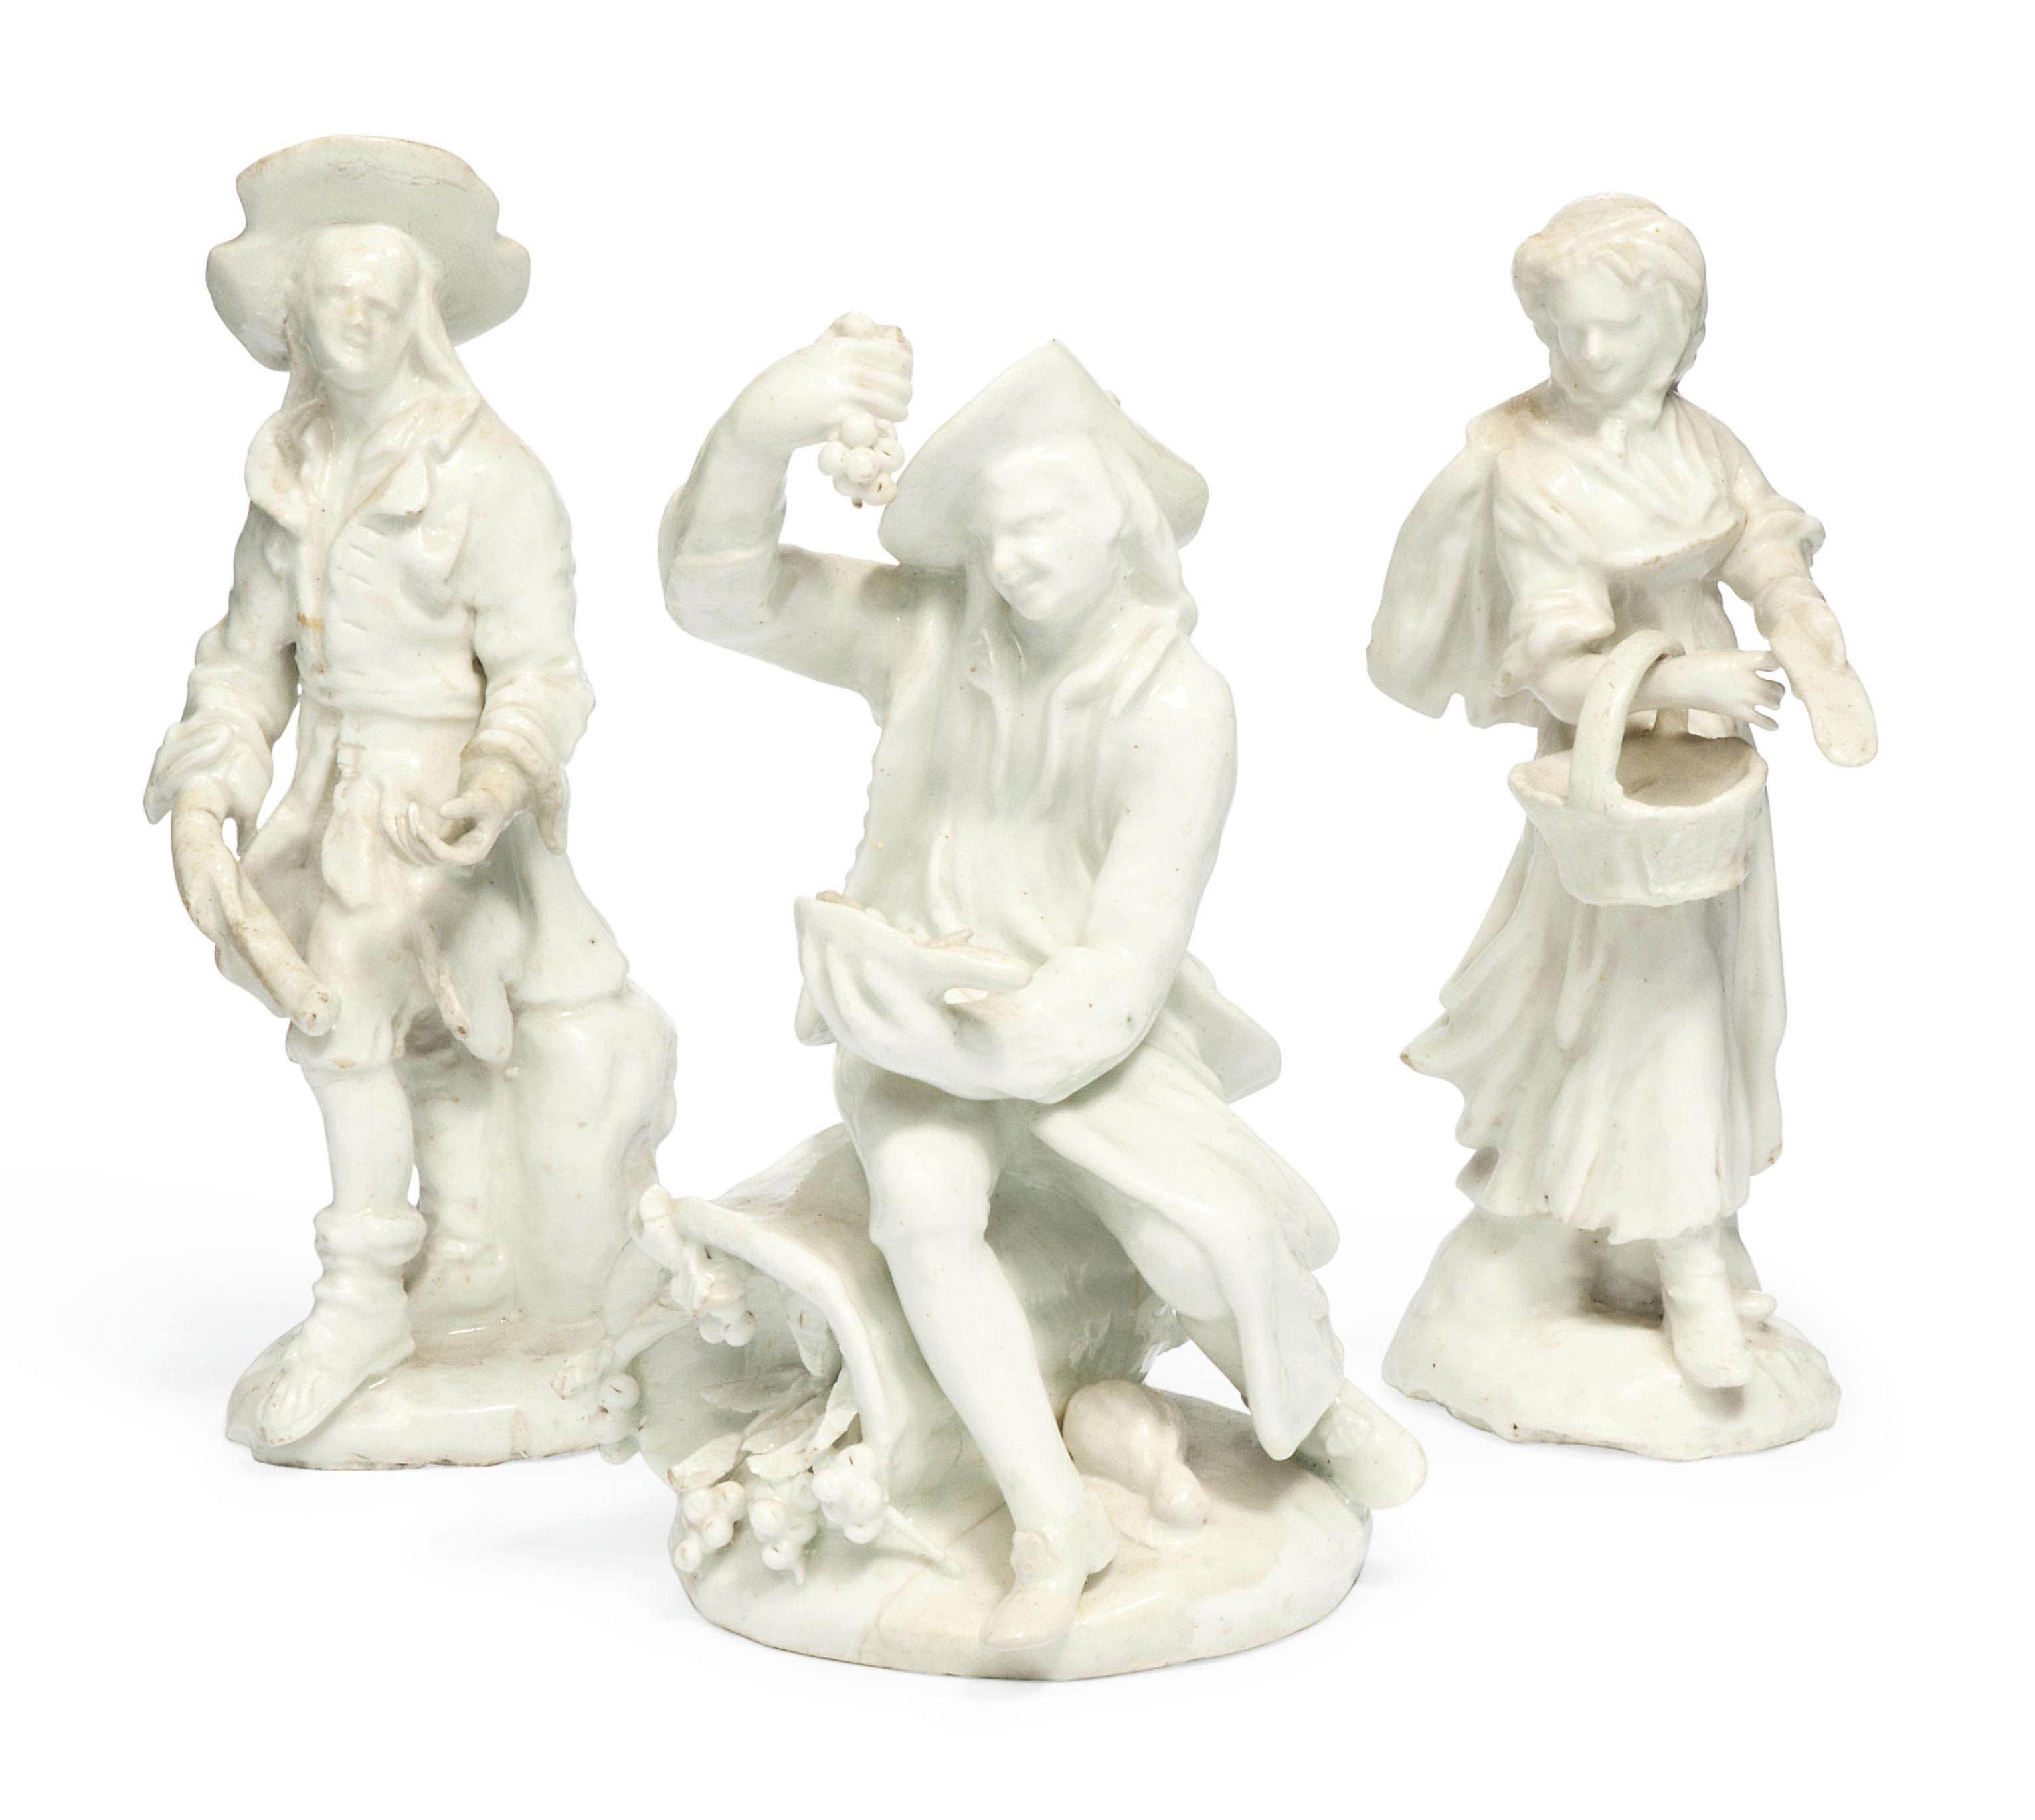 A PAIR OF BOW WHITE FIGURES OF BEGGARS AND A FIGURE EMBLEMATIC OF AUTUMN FROM THE SEATED RUSTIC SEASONS